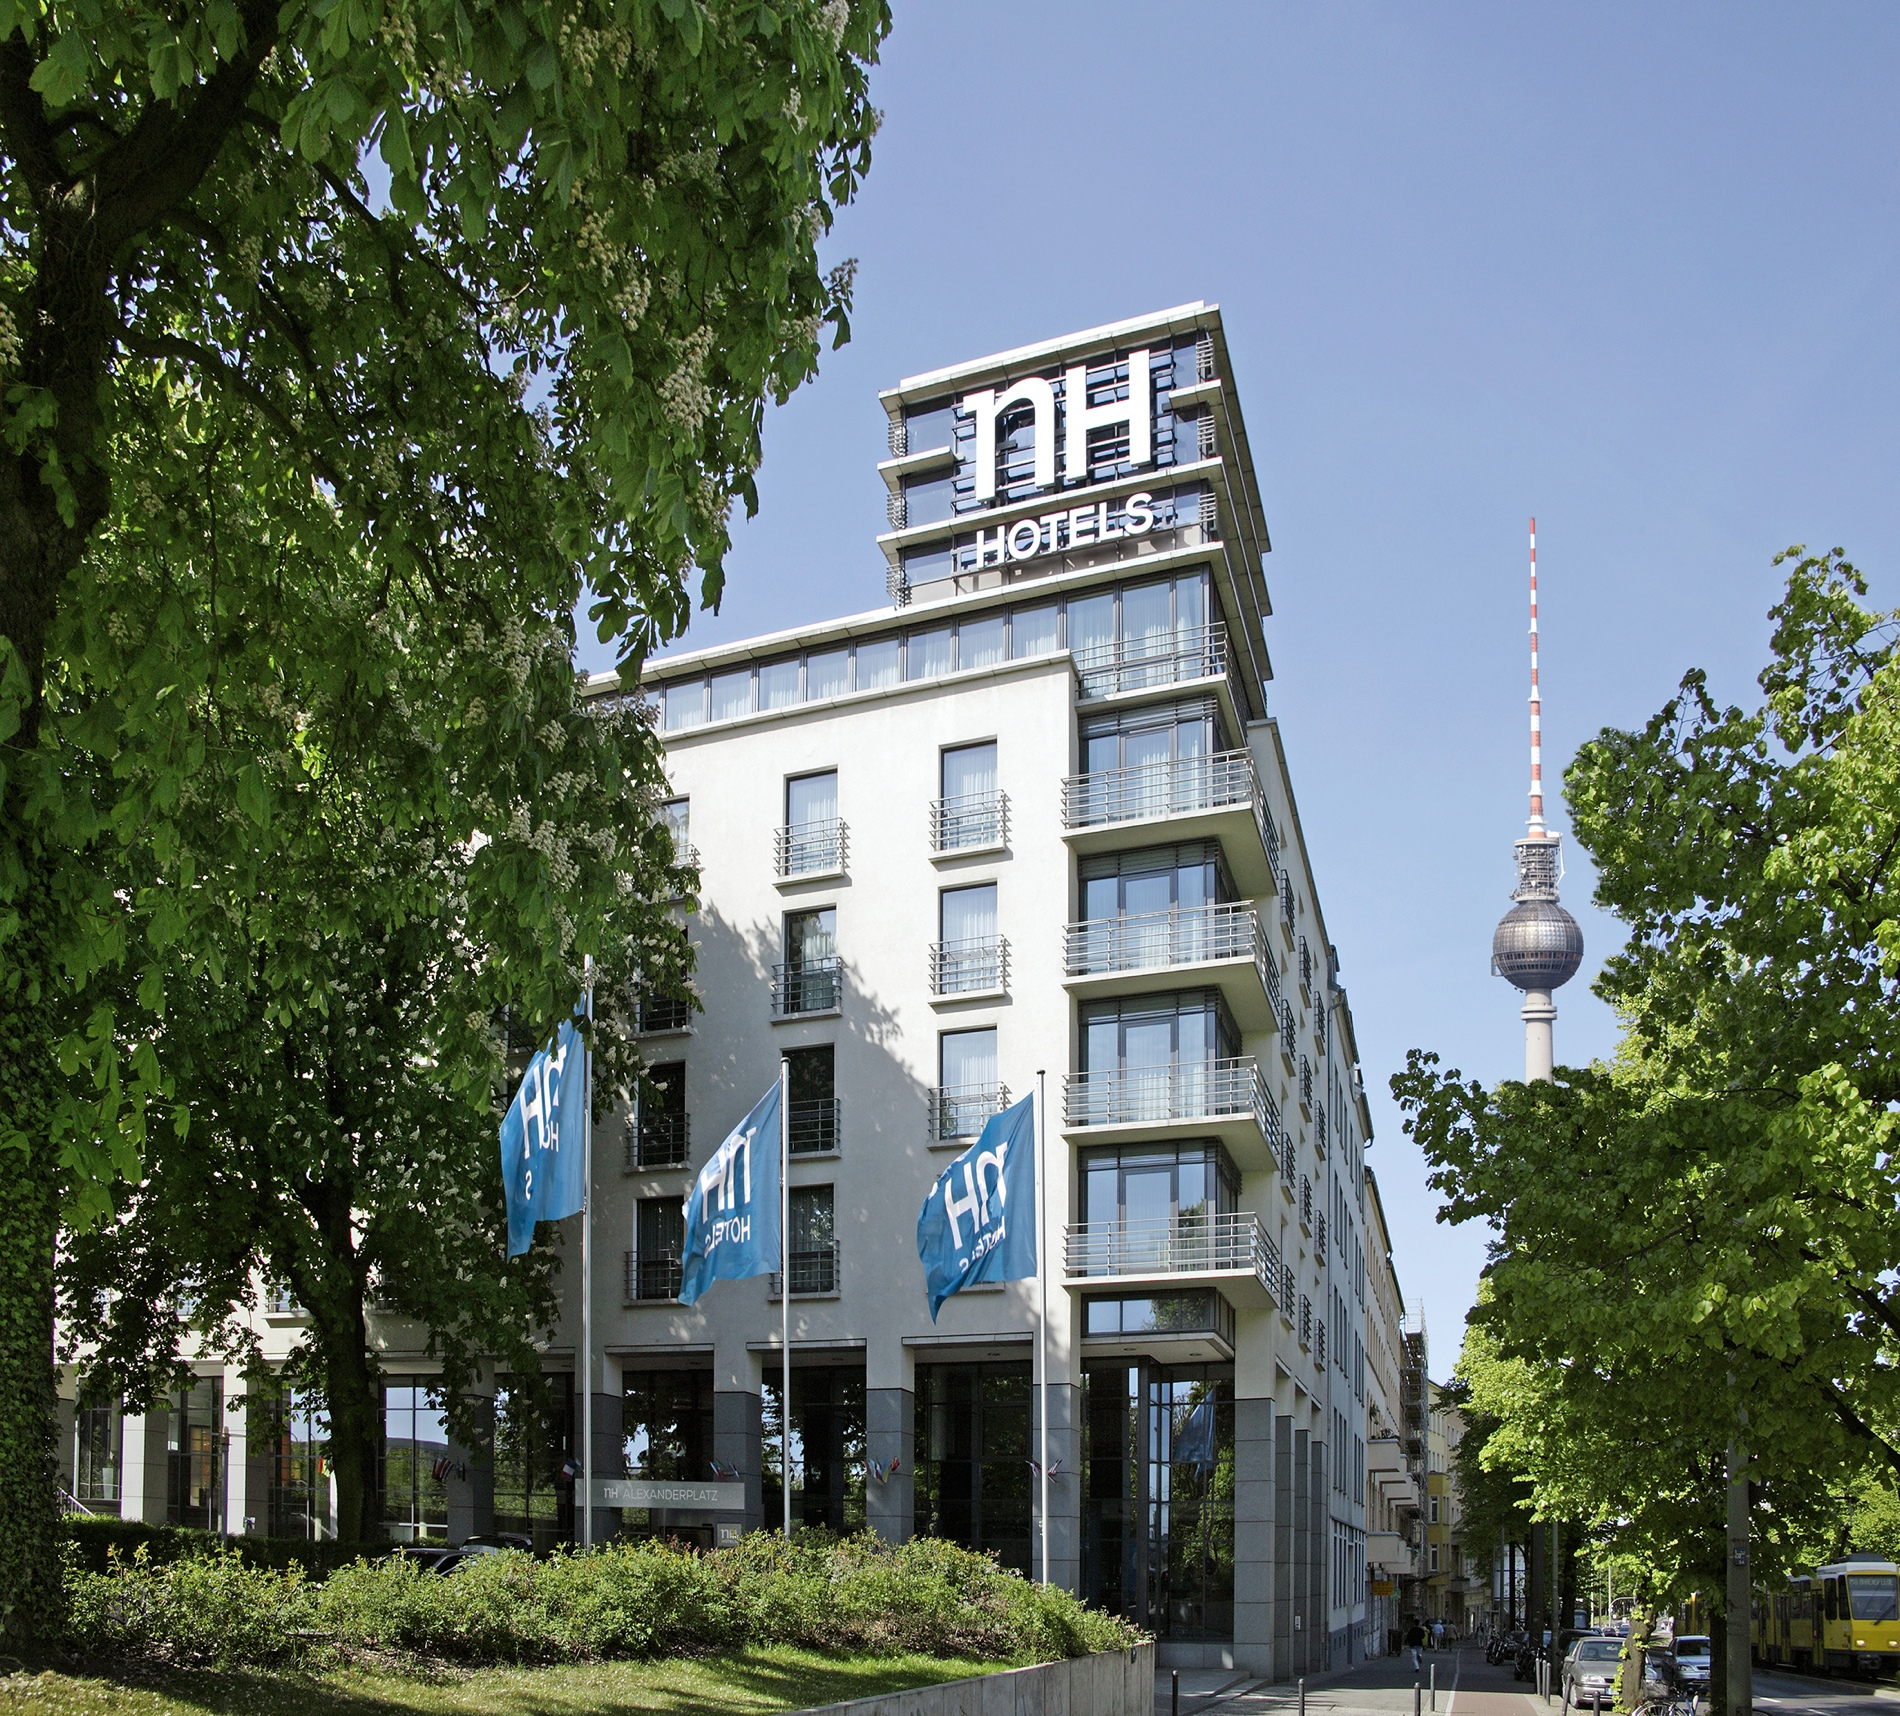 Roundtable strategische planung for Alexanderplatz hotel